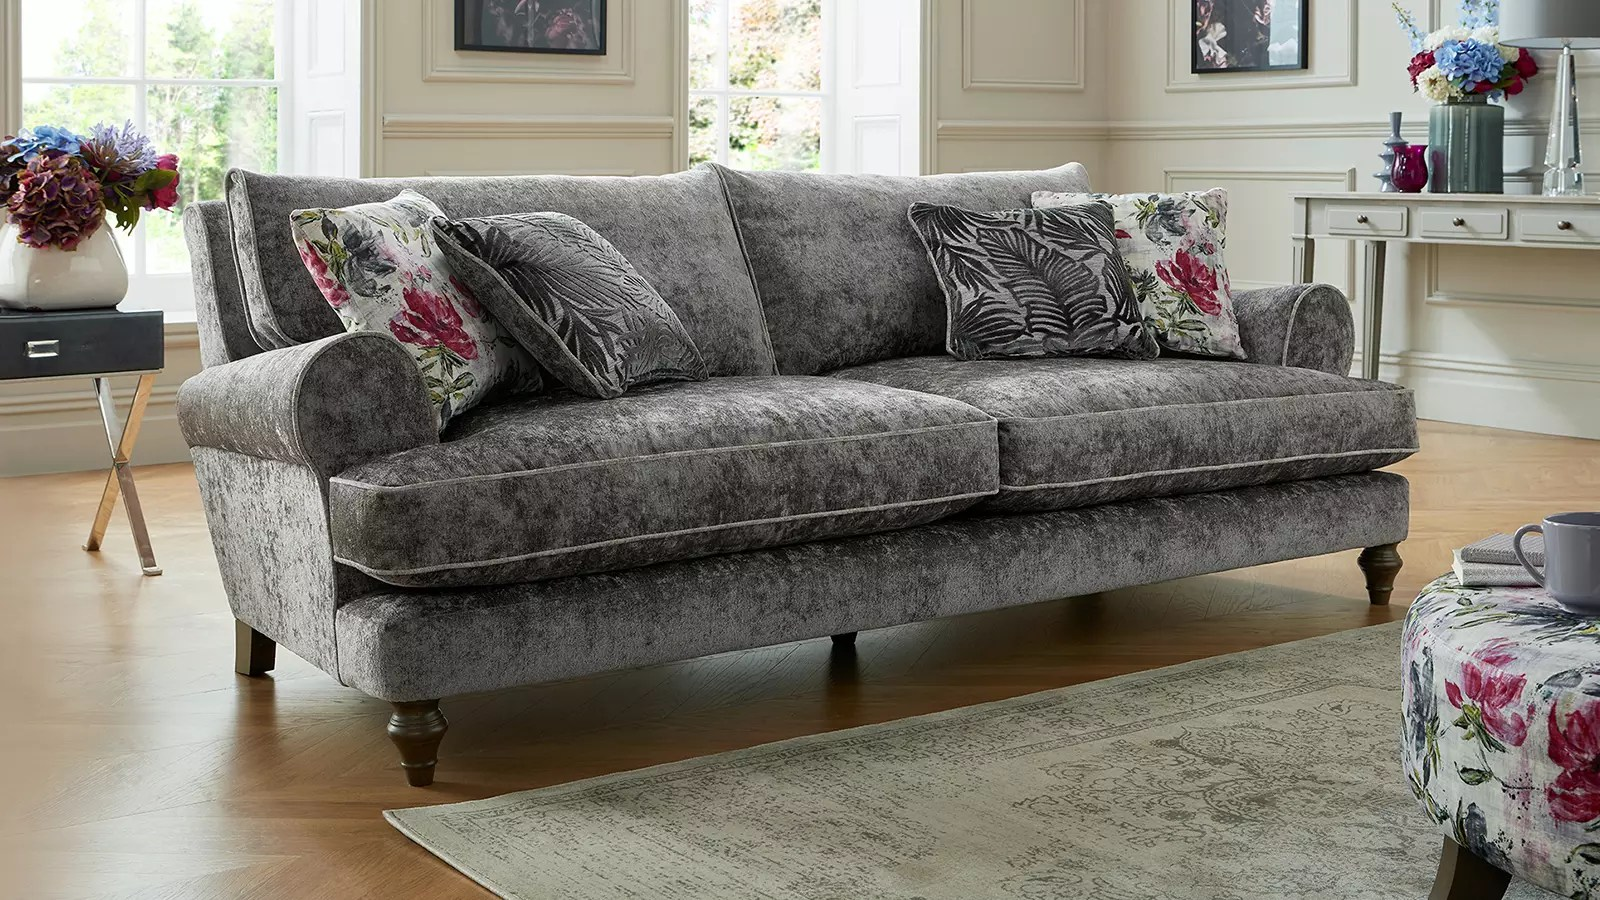 htl sofa stockists uk french designs sofology sofas corner beds chairs always low prices maya dark fabric